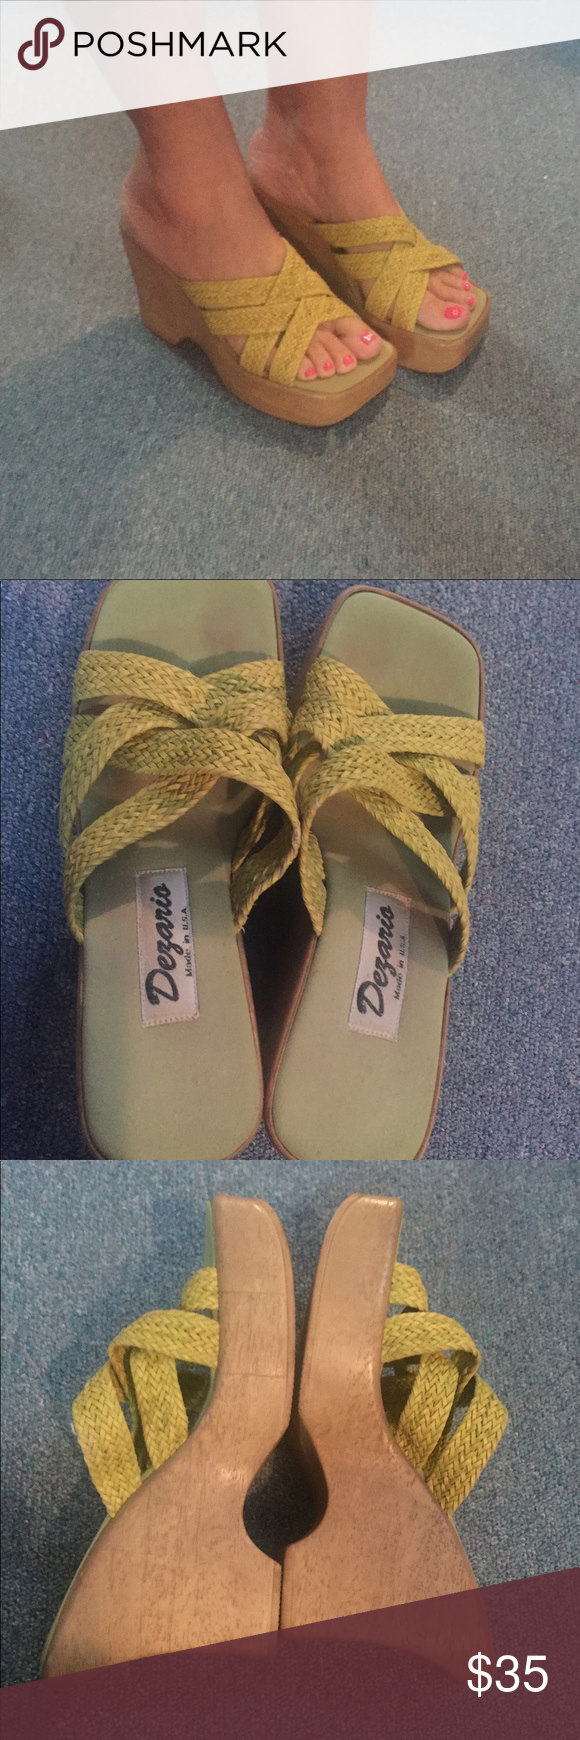 a7e189a505b Dezario Wedges Dezario Wedges size 7. Dezario Shoes Wedges